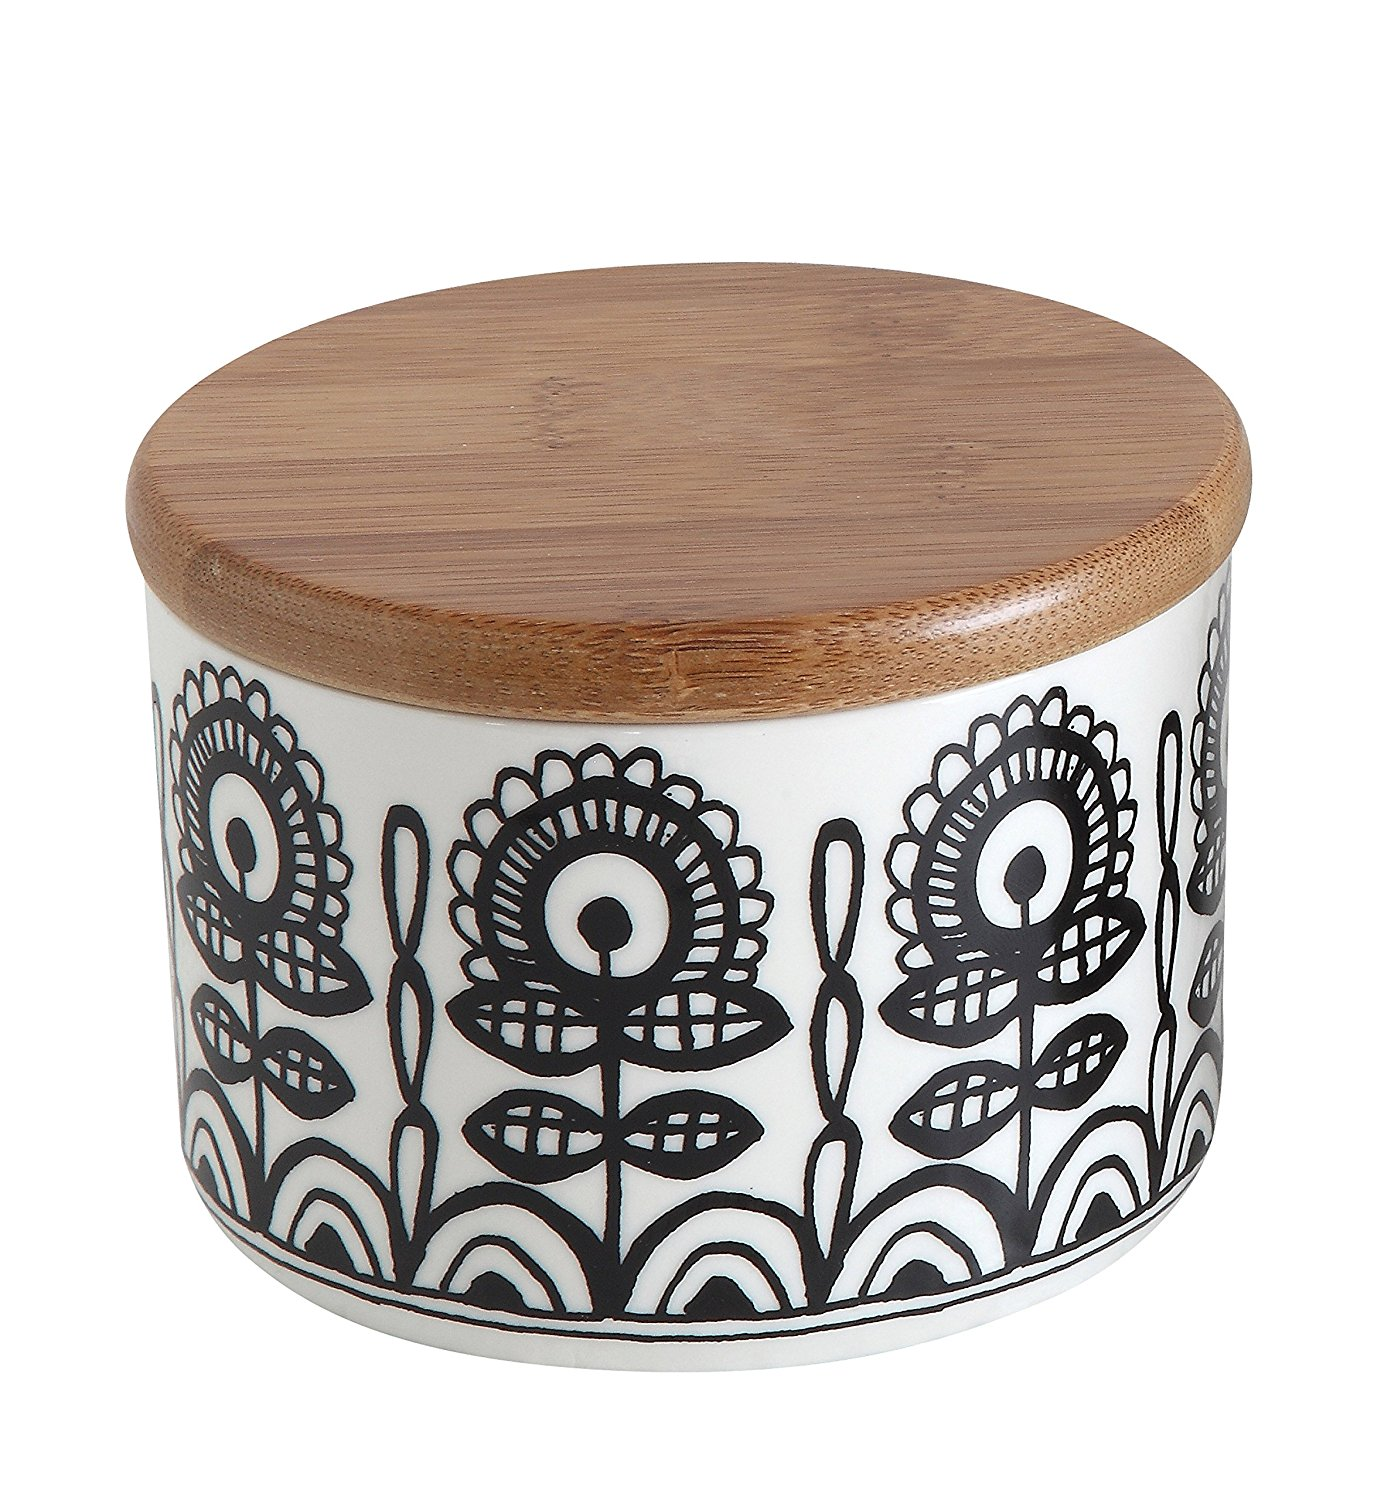 Creative Co-op Ceramic Jar with Bamboo Lid and Black-White Floral Design, Multicolor, Small